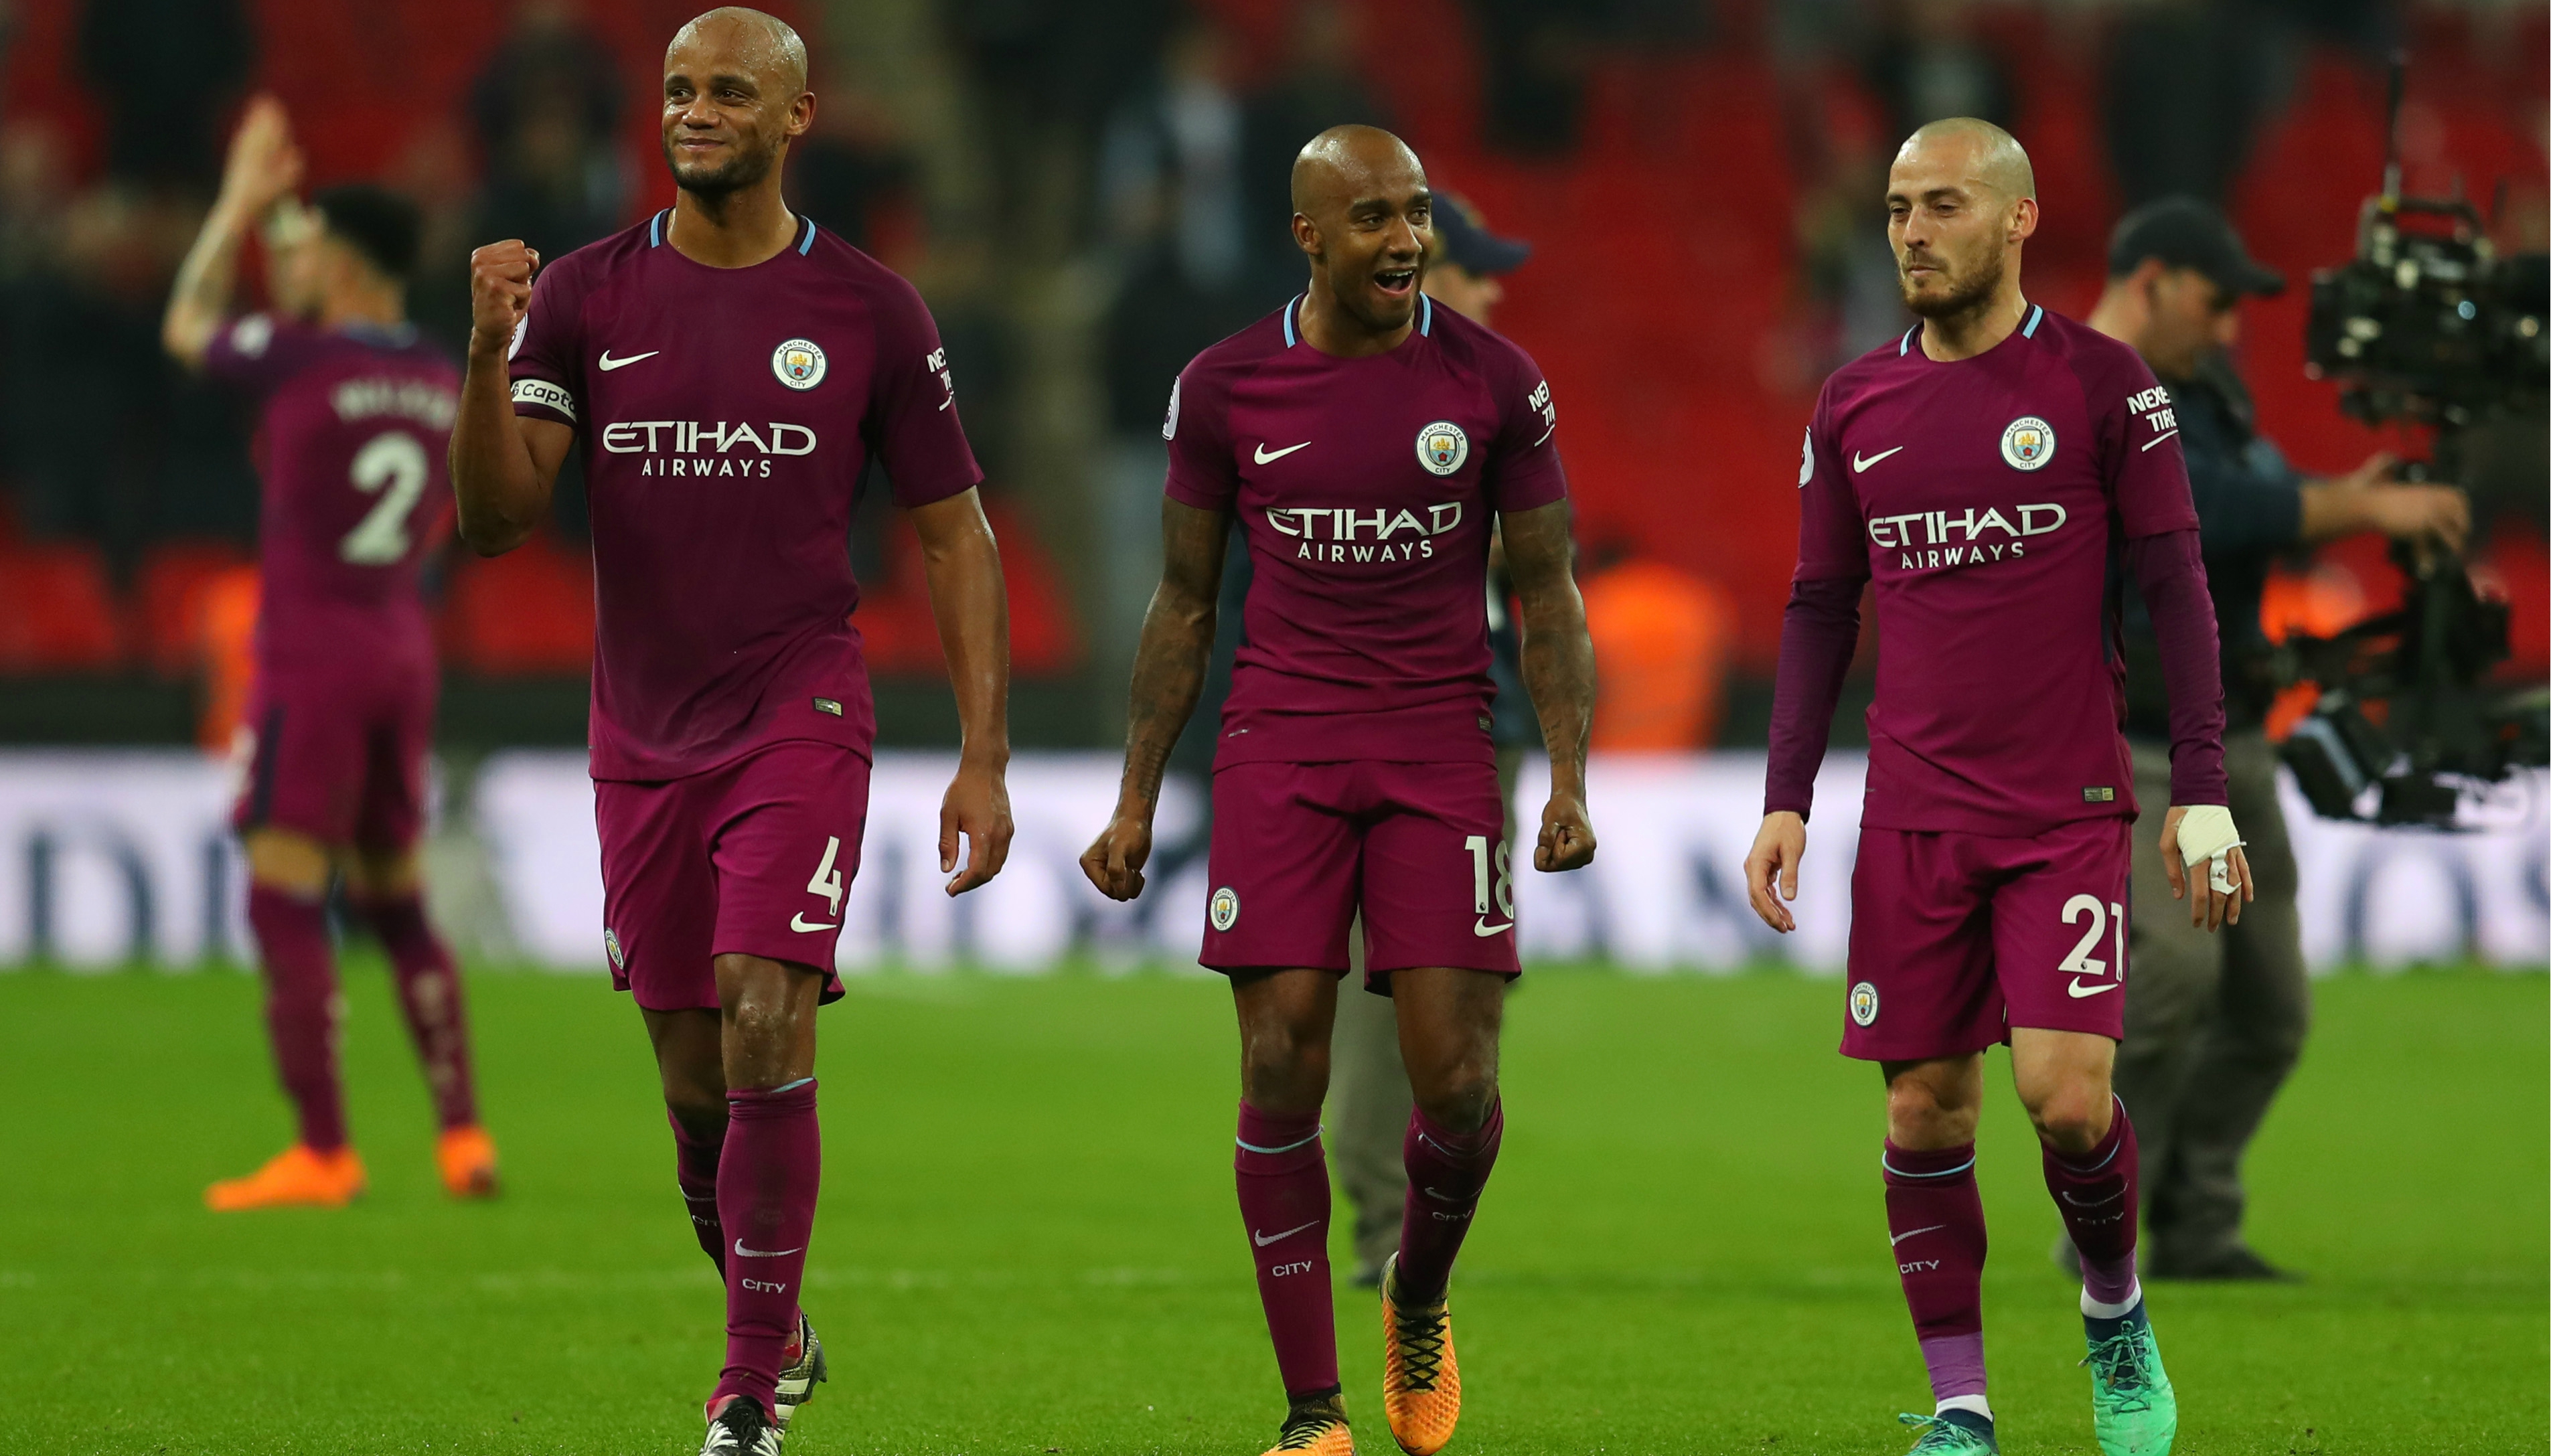 From Ederson to De Bruyne, players who helped City win title